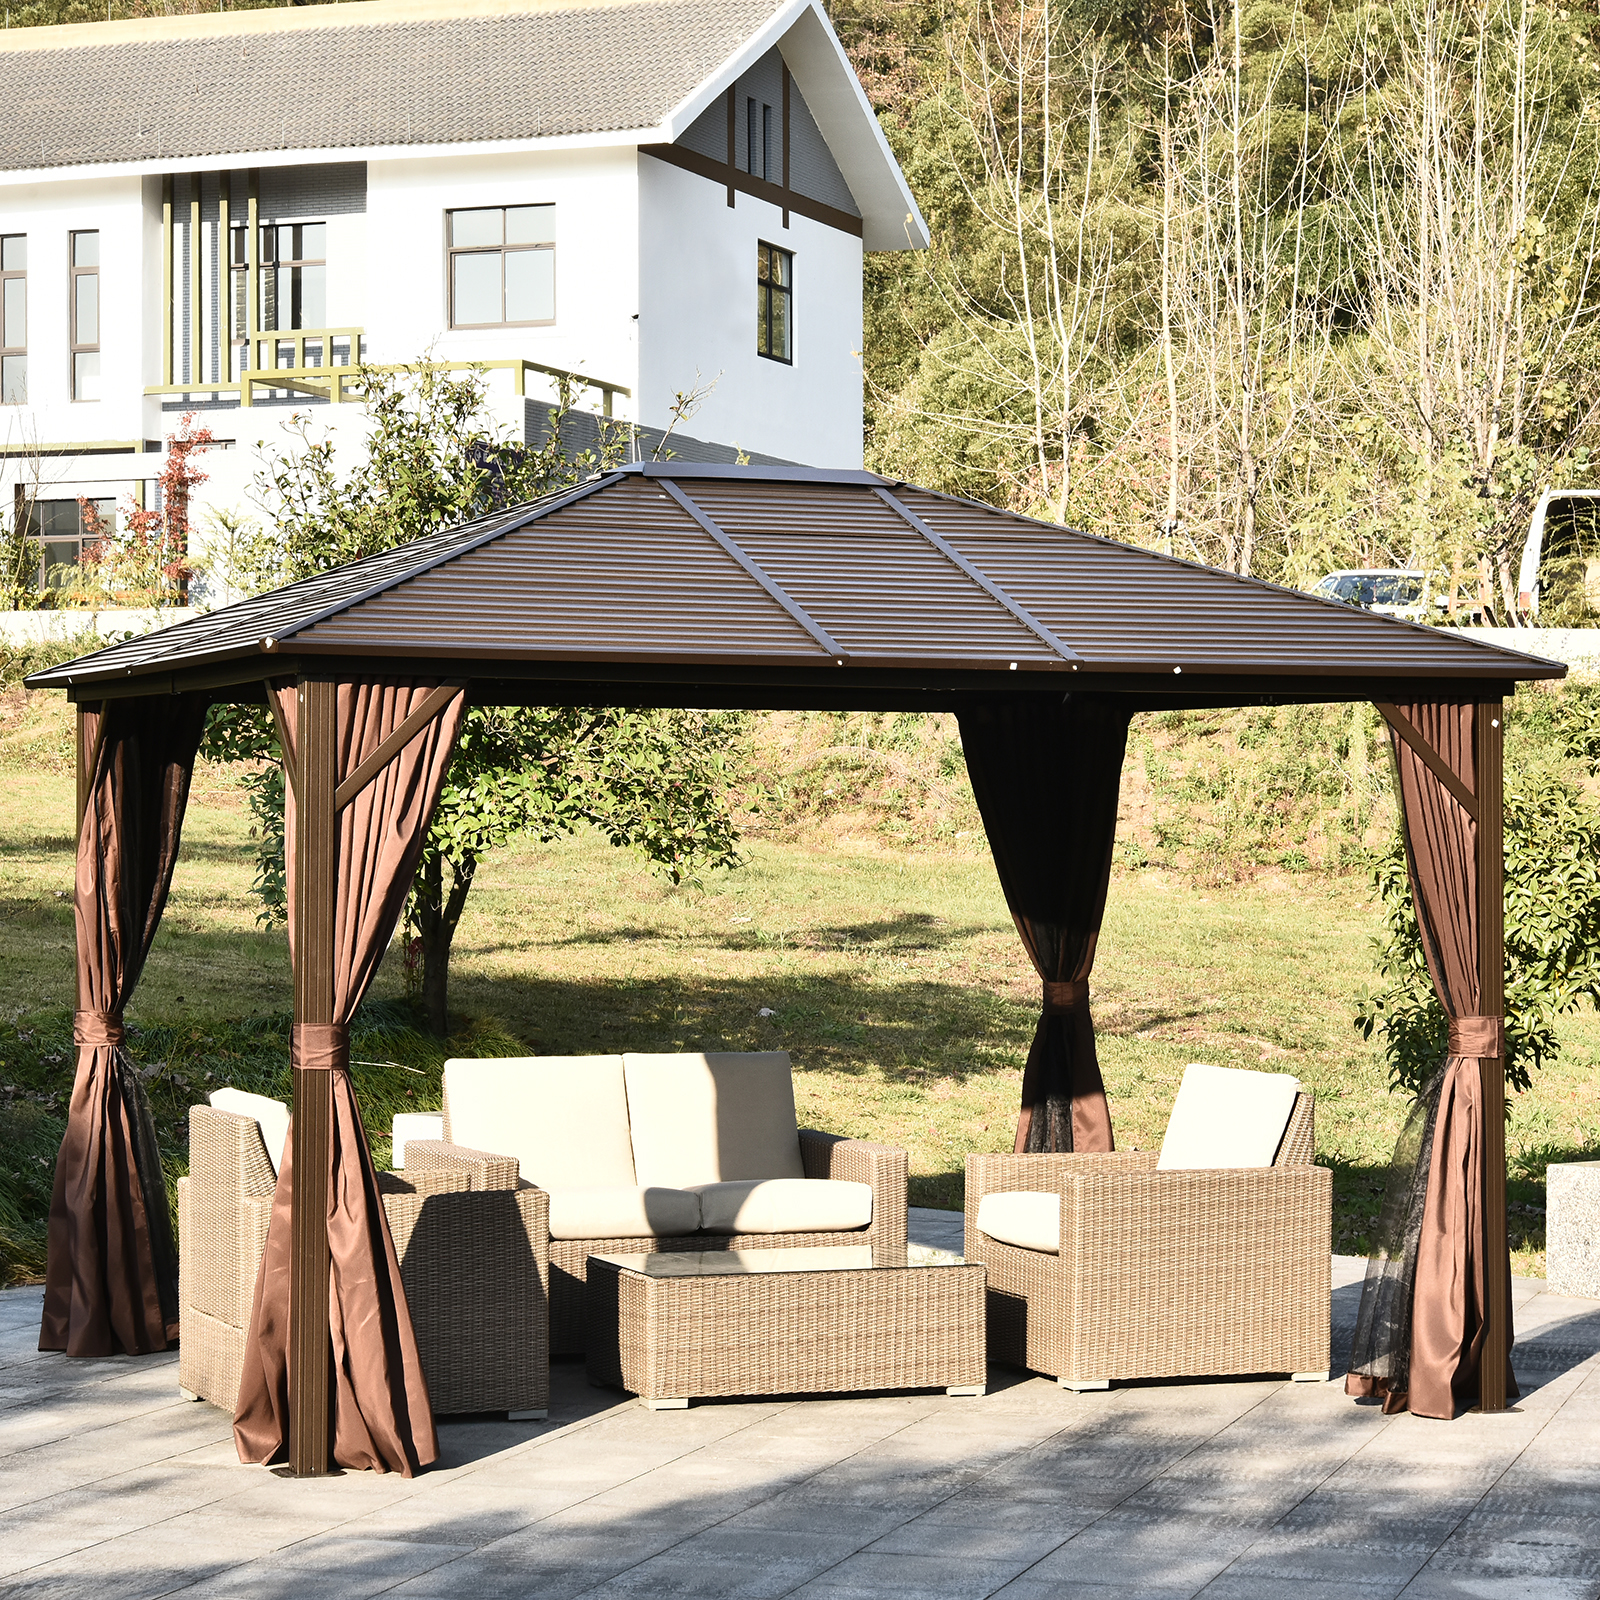 10 X 12 Deluxe Gazebo Patio Canopy Hard Top Outdoor Event W Double Netting 842525105323 Ebay